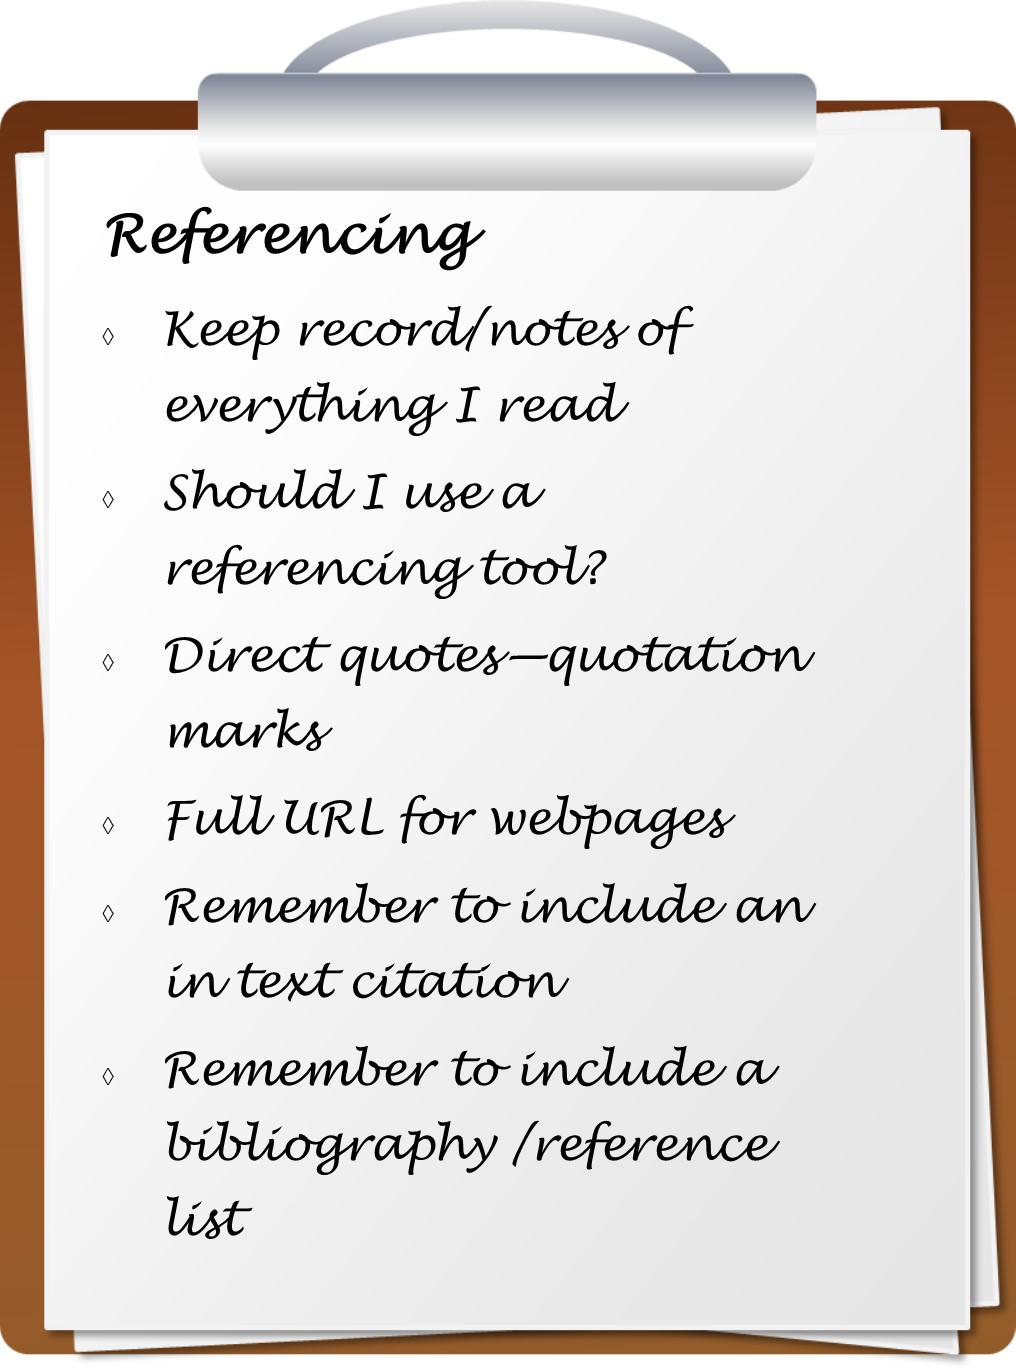 Referencing checklist image